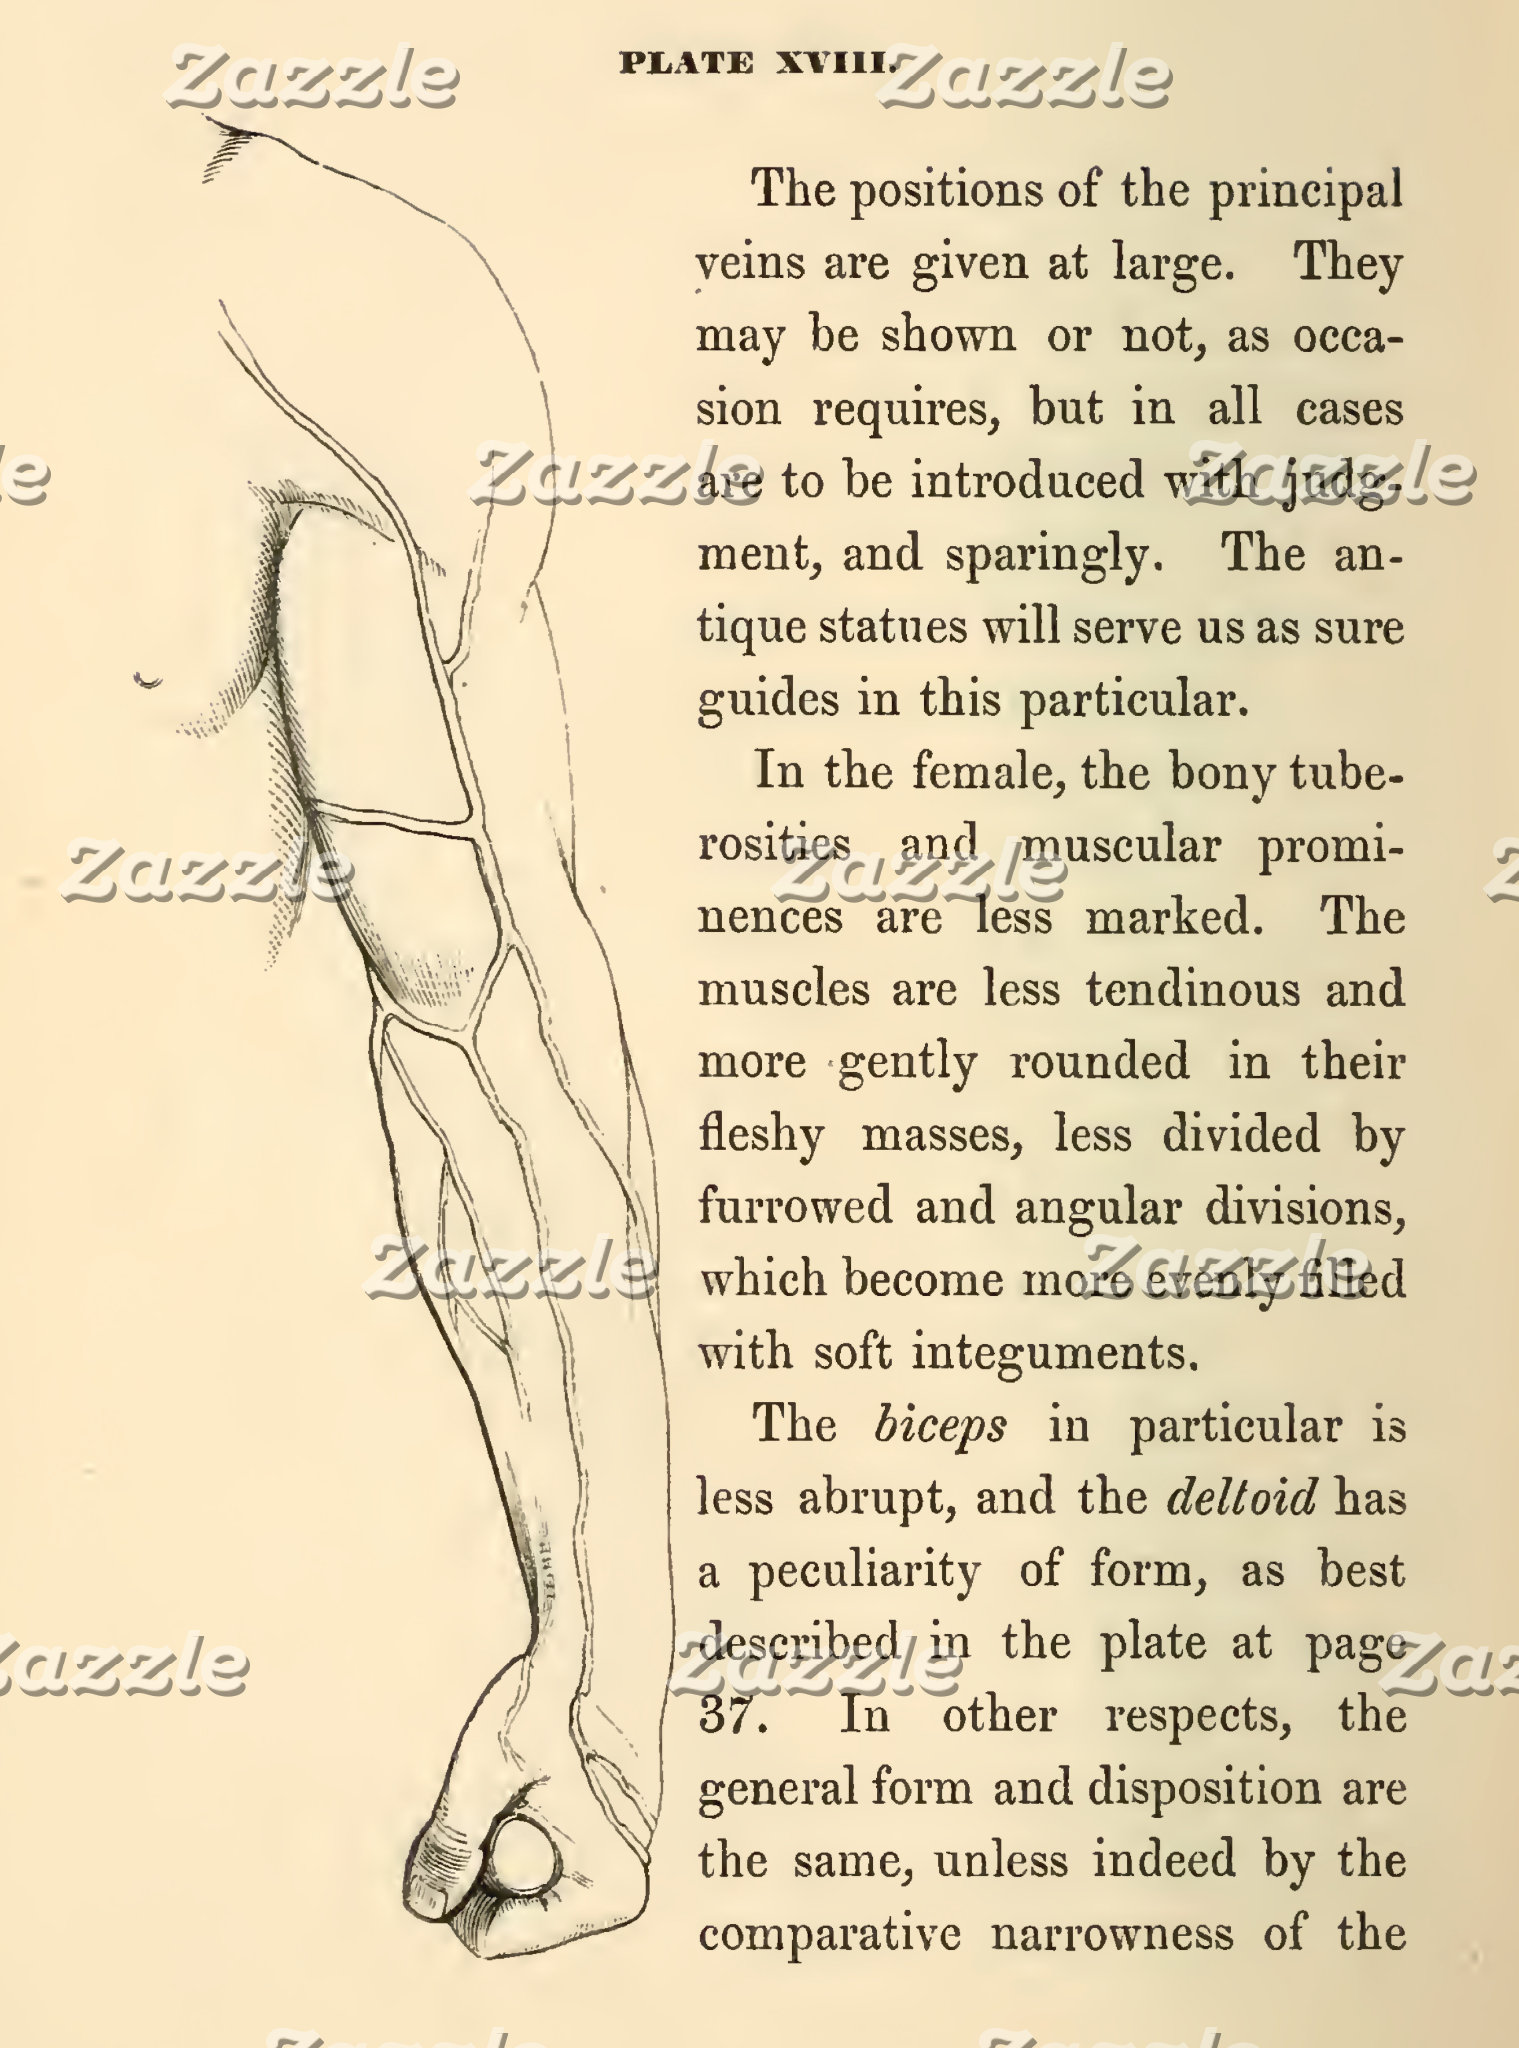 Vintage Anatomy | Veins of the Arm